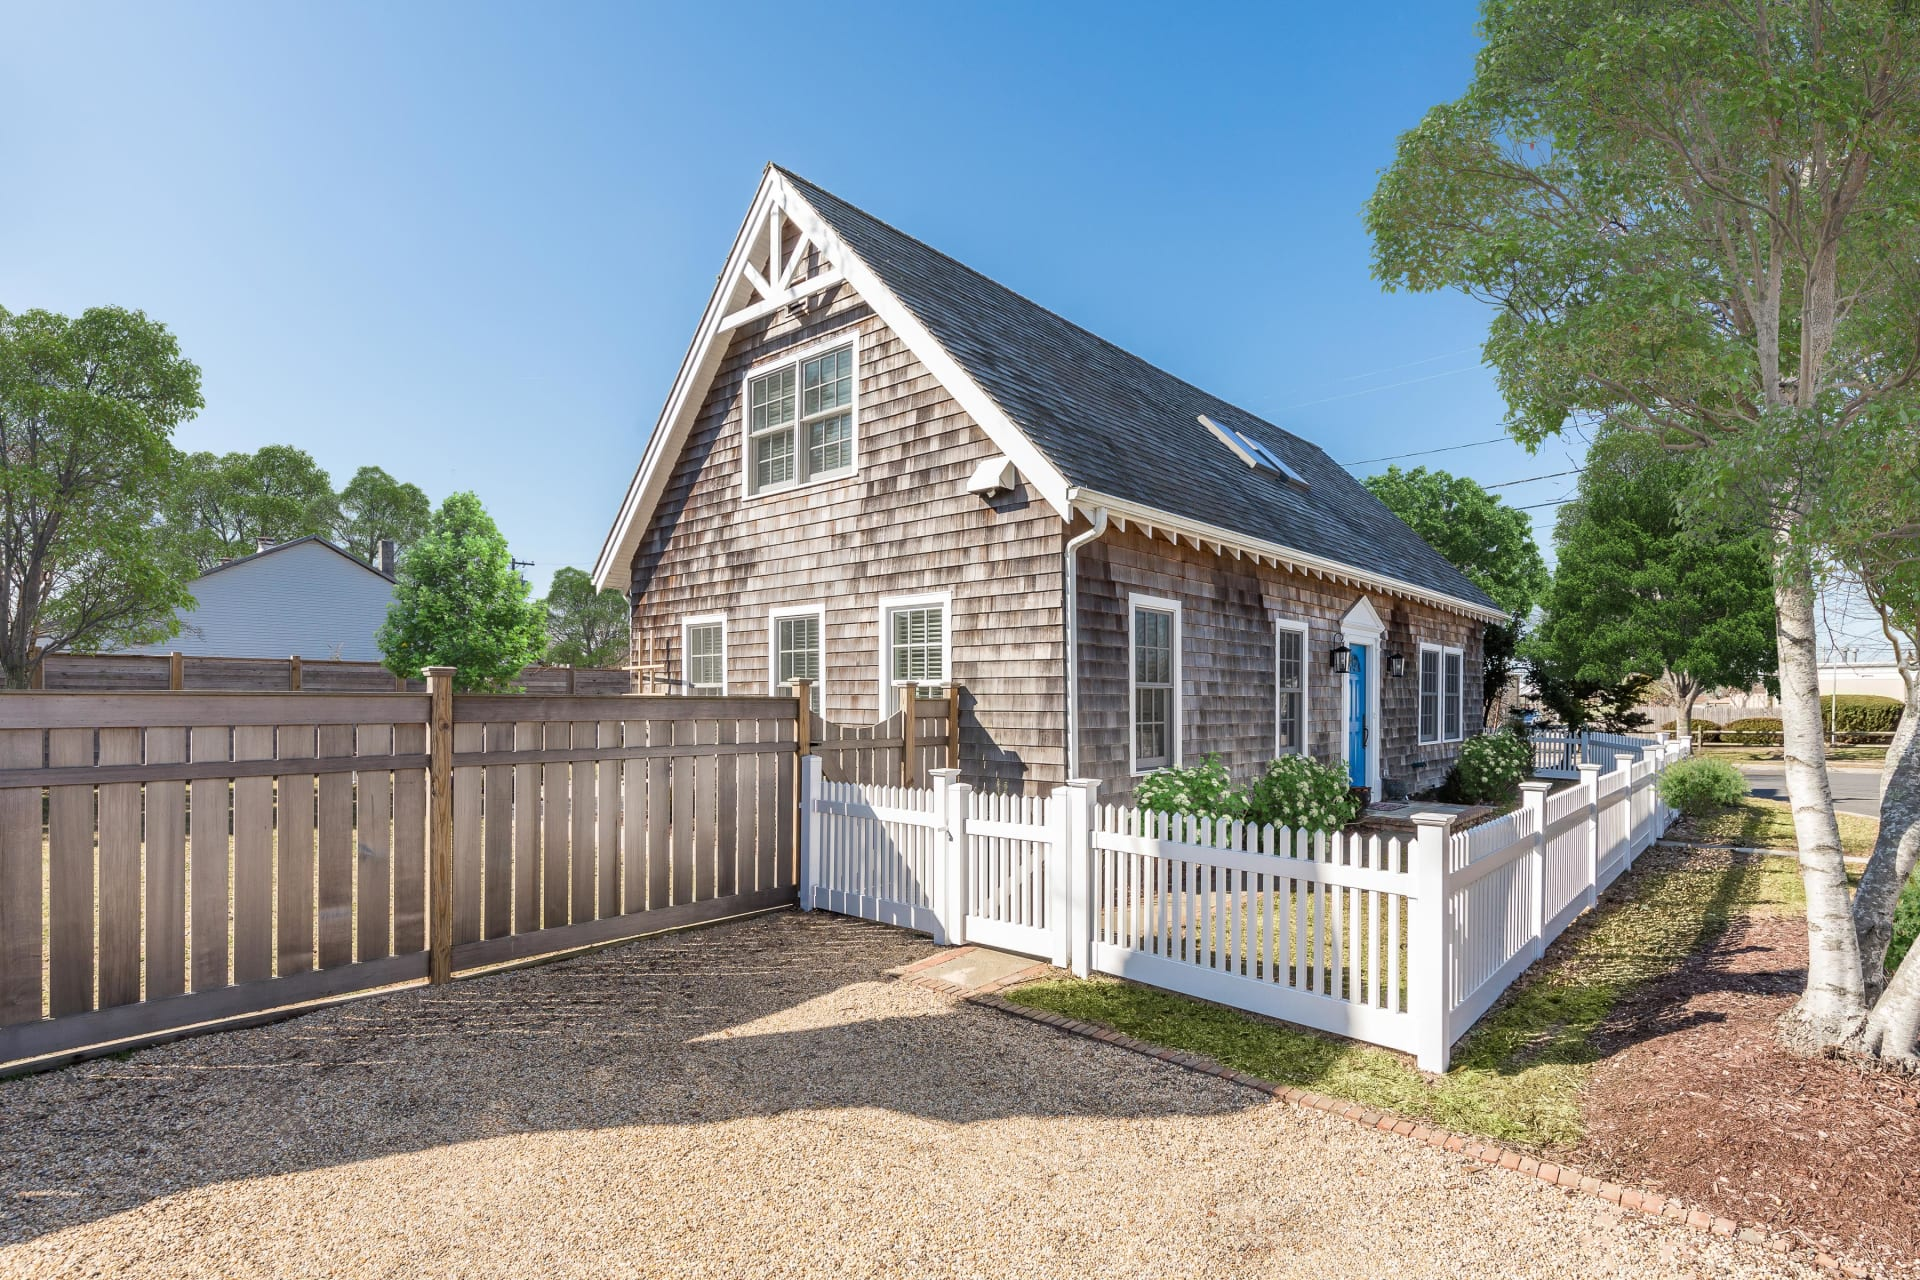 Bridgehampton Village Charming Carriage-Style Cottage